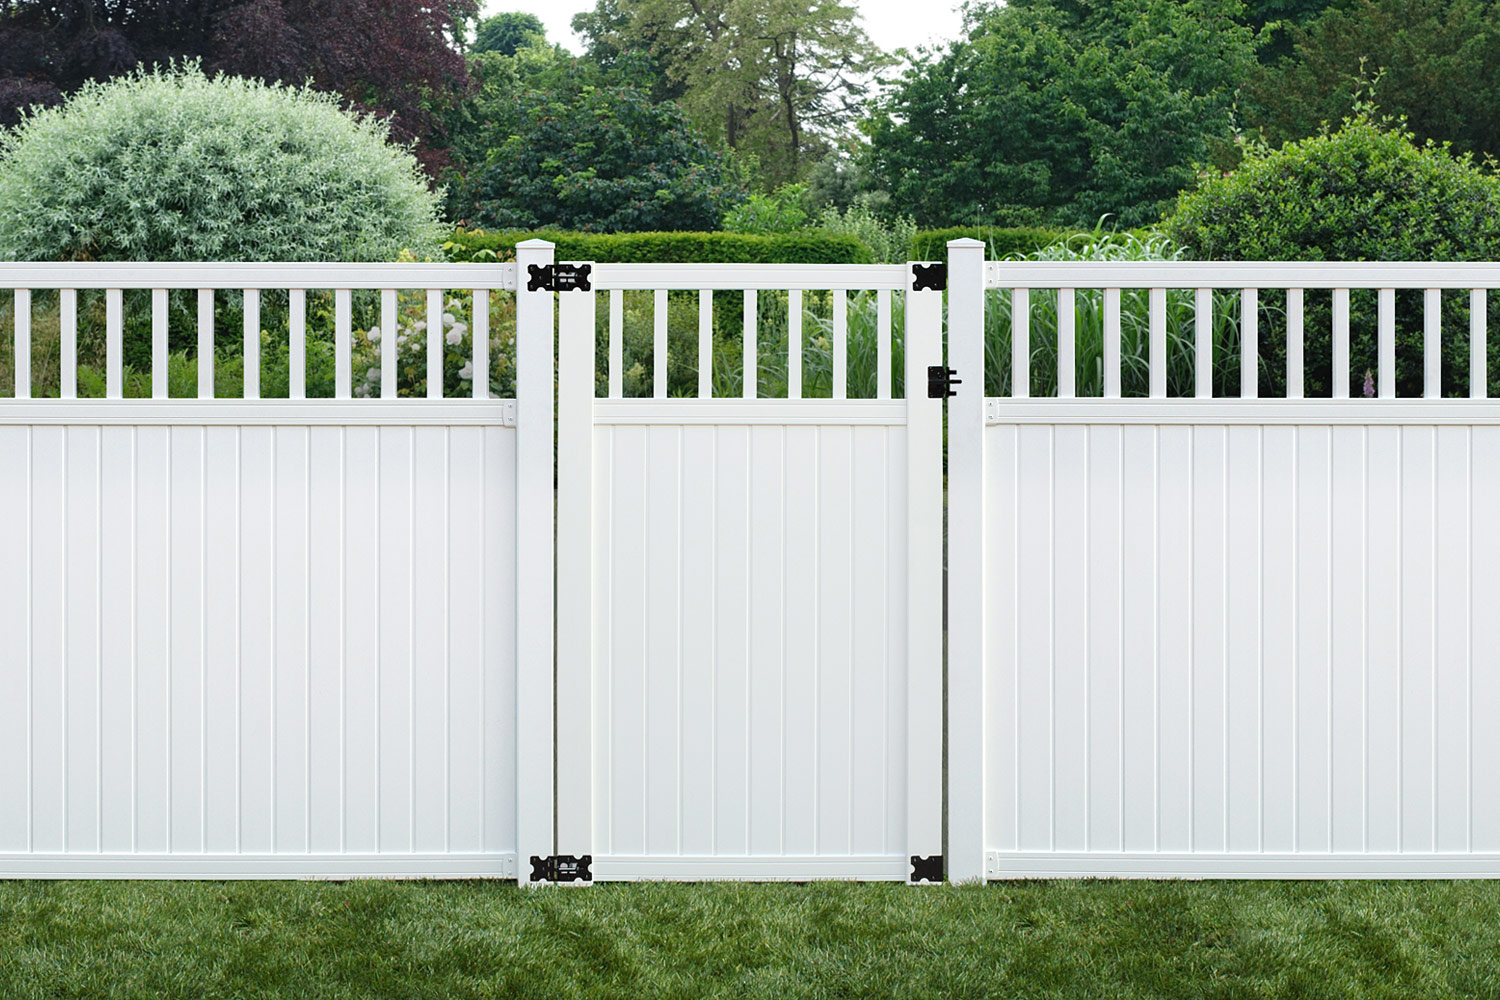 Sixth Avenue Building Products Belfast Spindle Top Privacy Fence and Gate -White